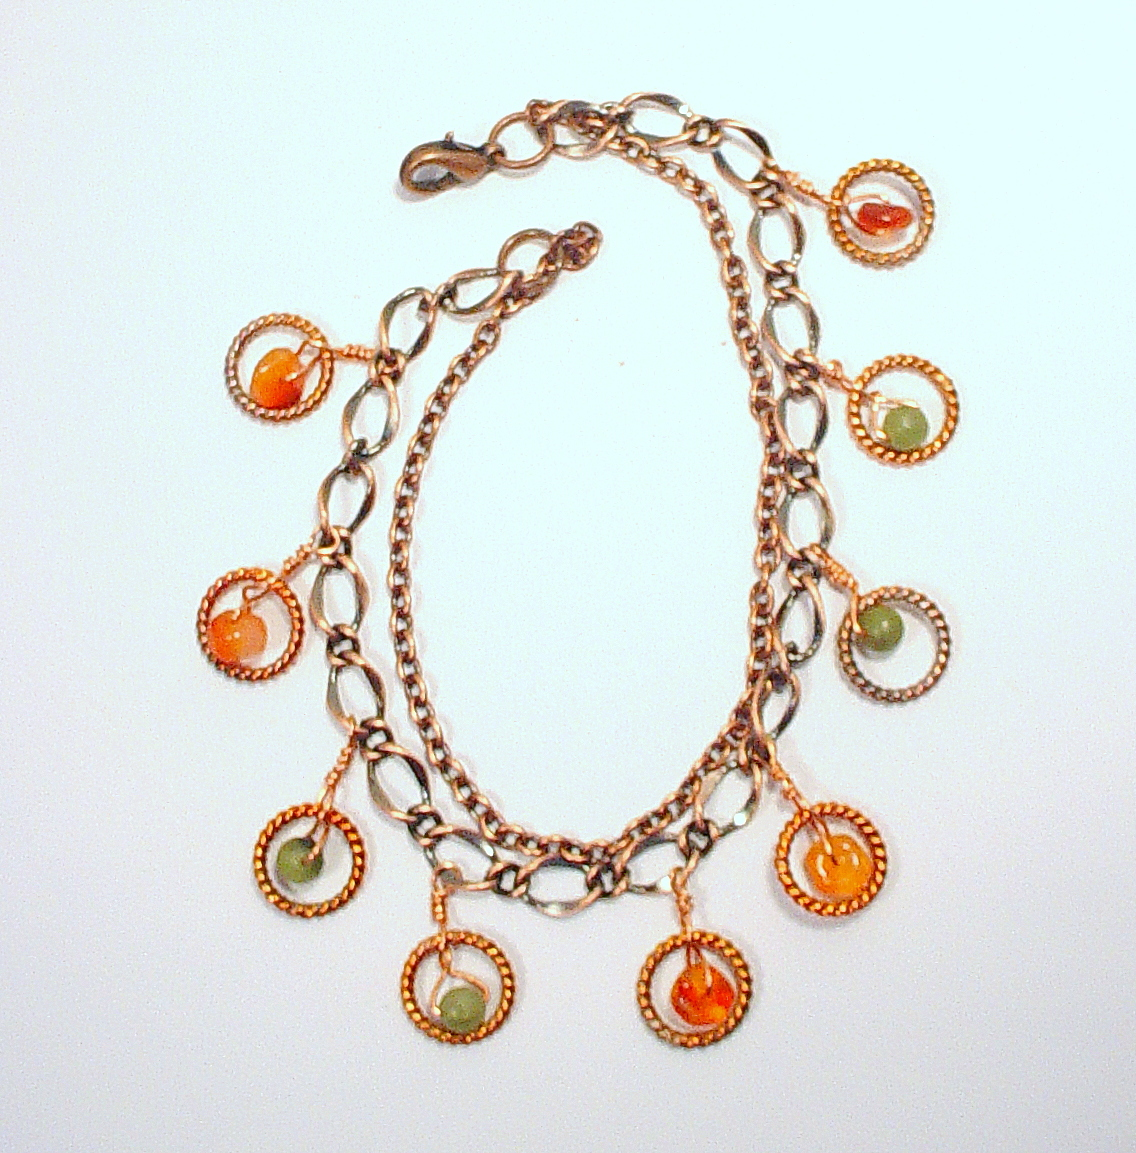 Copper Chain Bracelet with Carnelian and Afghan Jade